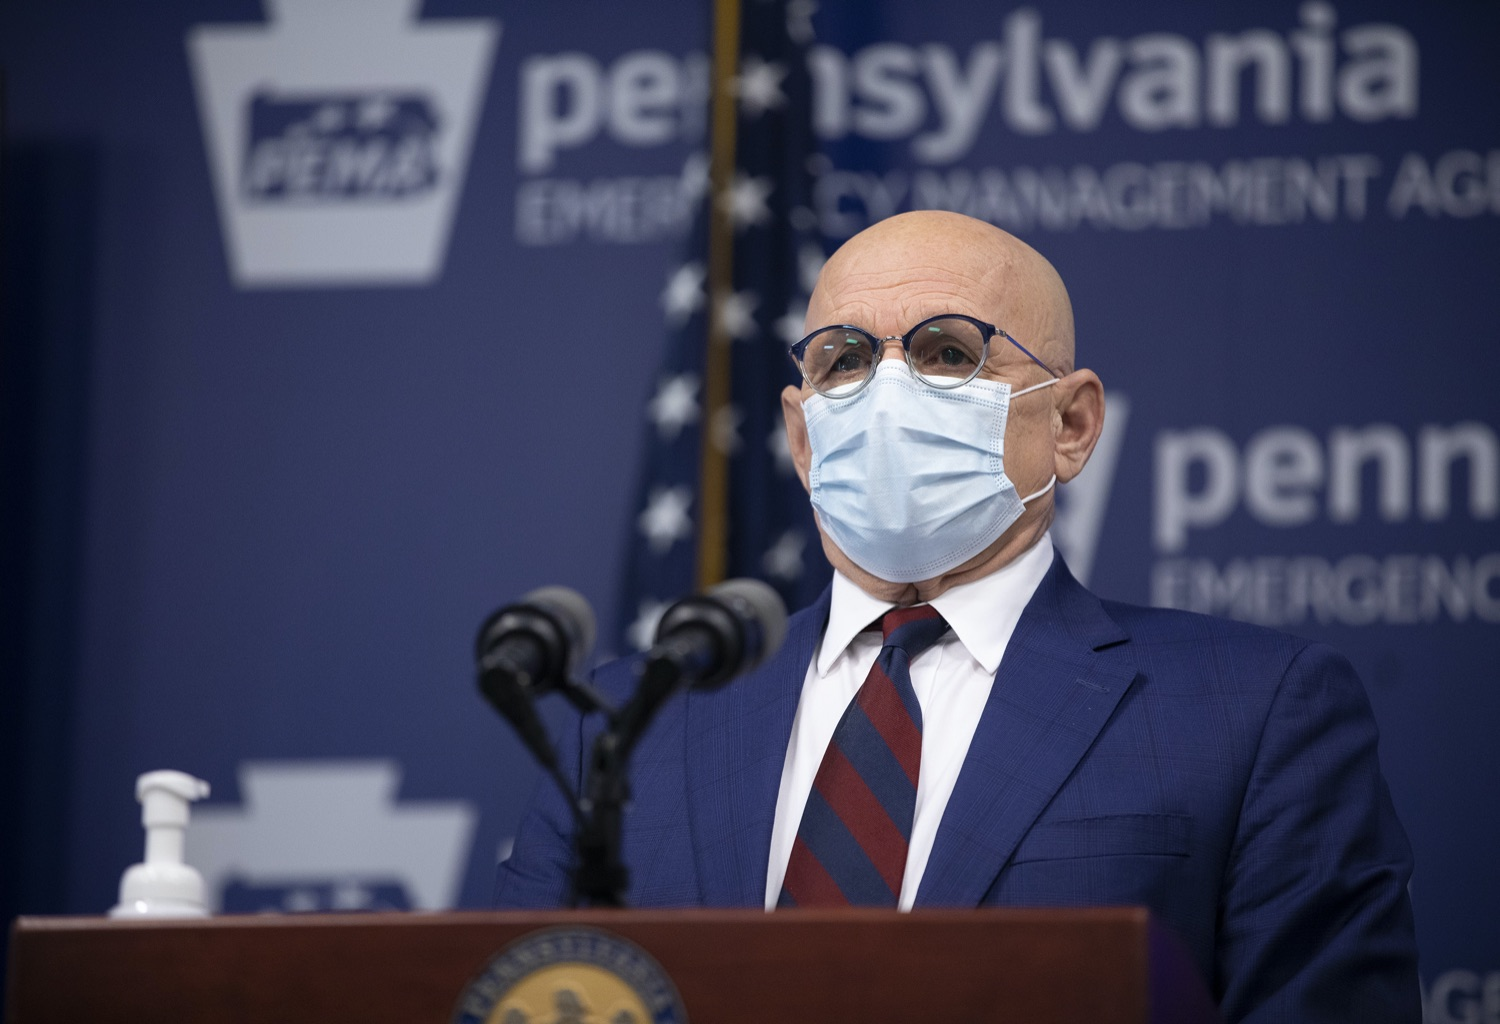 Michael Huff, Director of Testing and Contact Tracing at the Pennsylvania Department of Health, hosts a virtual media briefing to discuss Covid-19 in Pennsylvania on Tuesday, Nov. 24, 2020. (Source: Pa.gov)